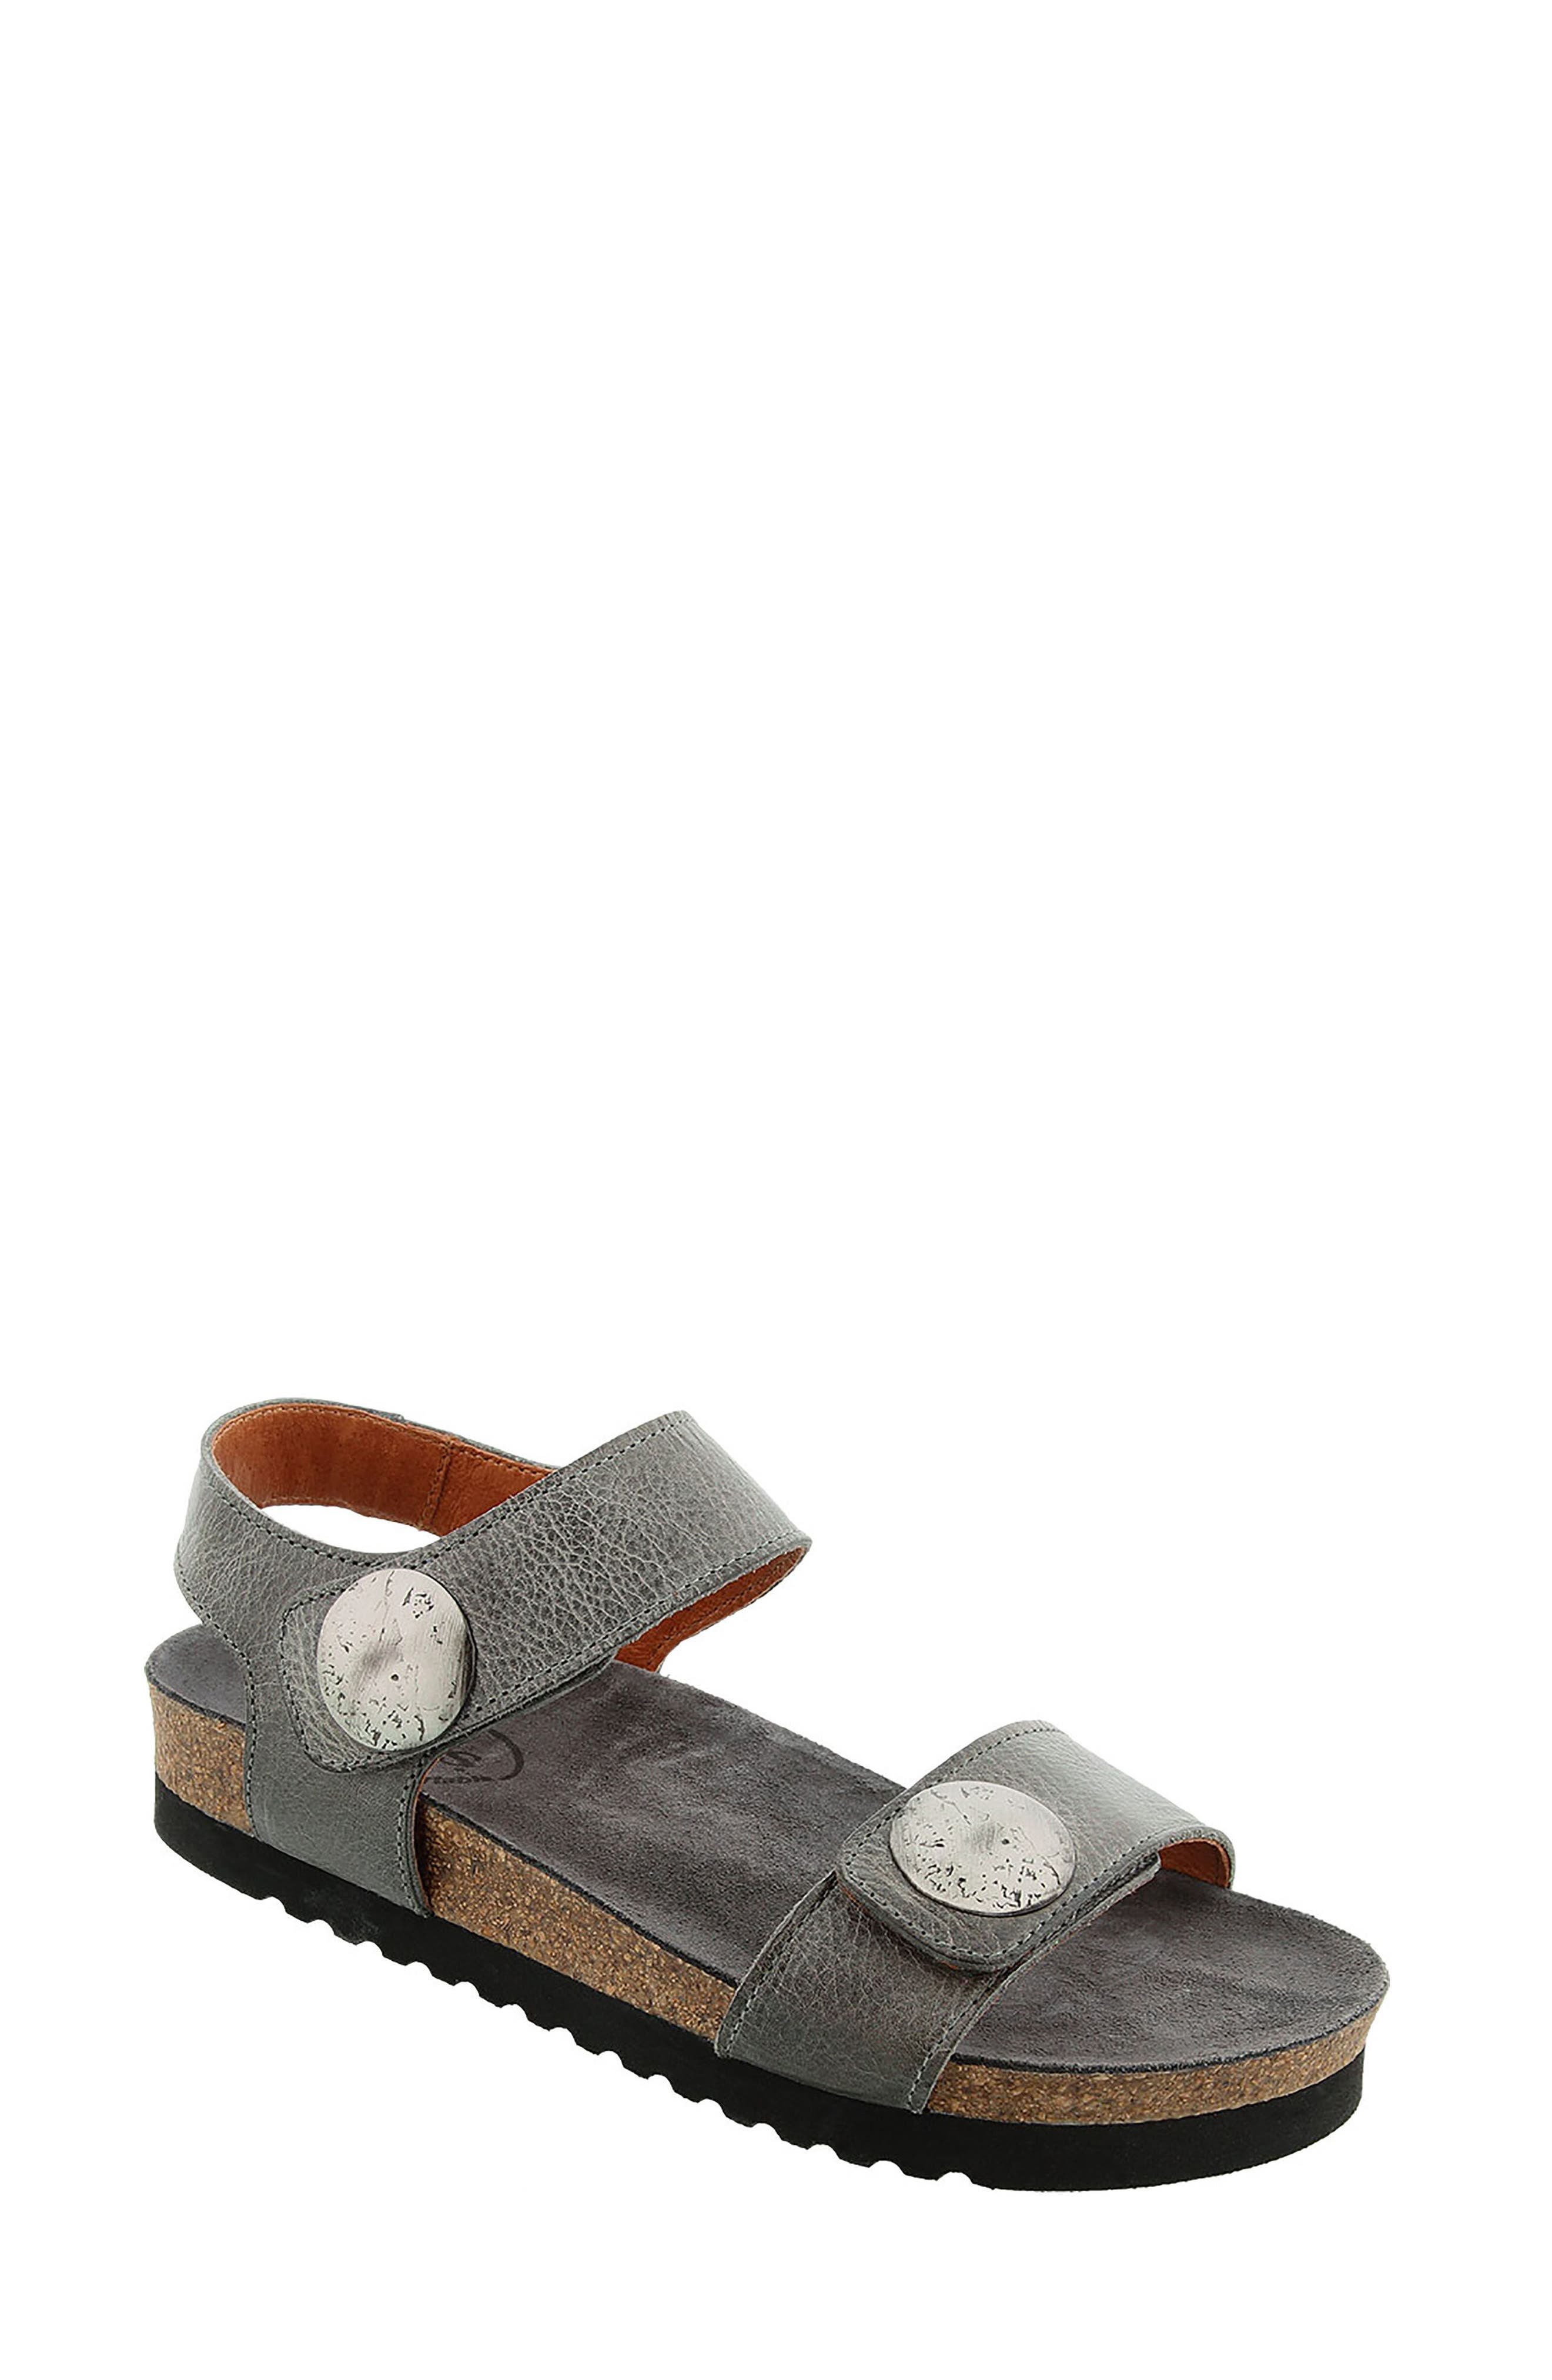 Luckie Sandal,                             Main thumbnail 2, color,